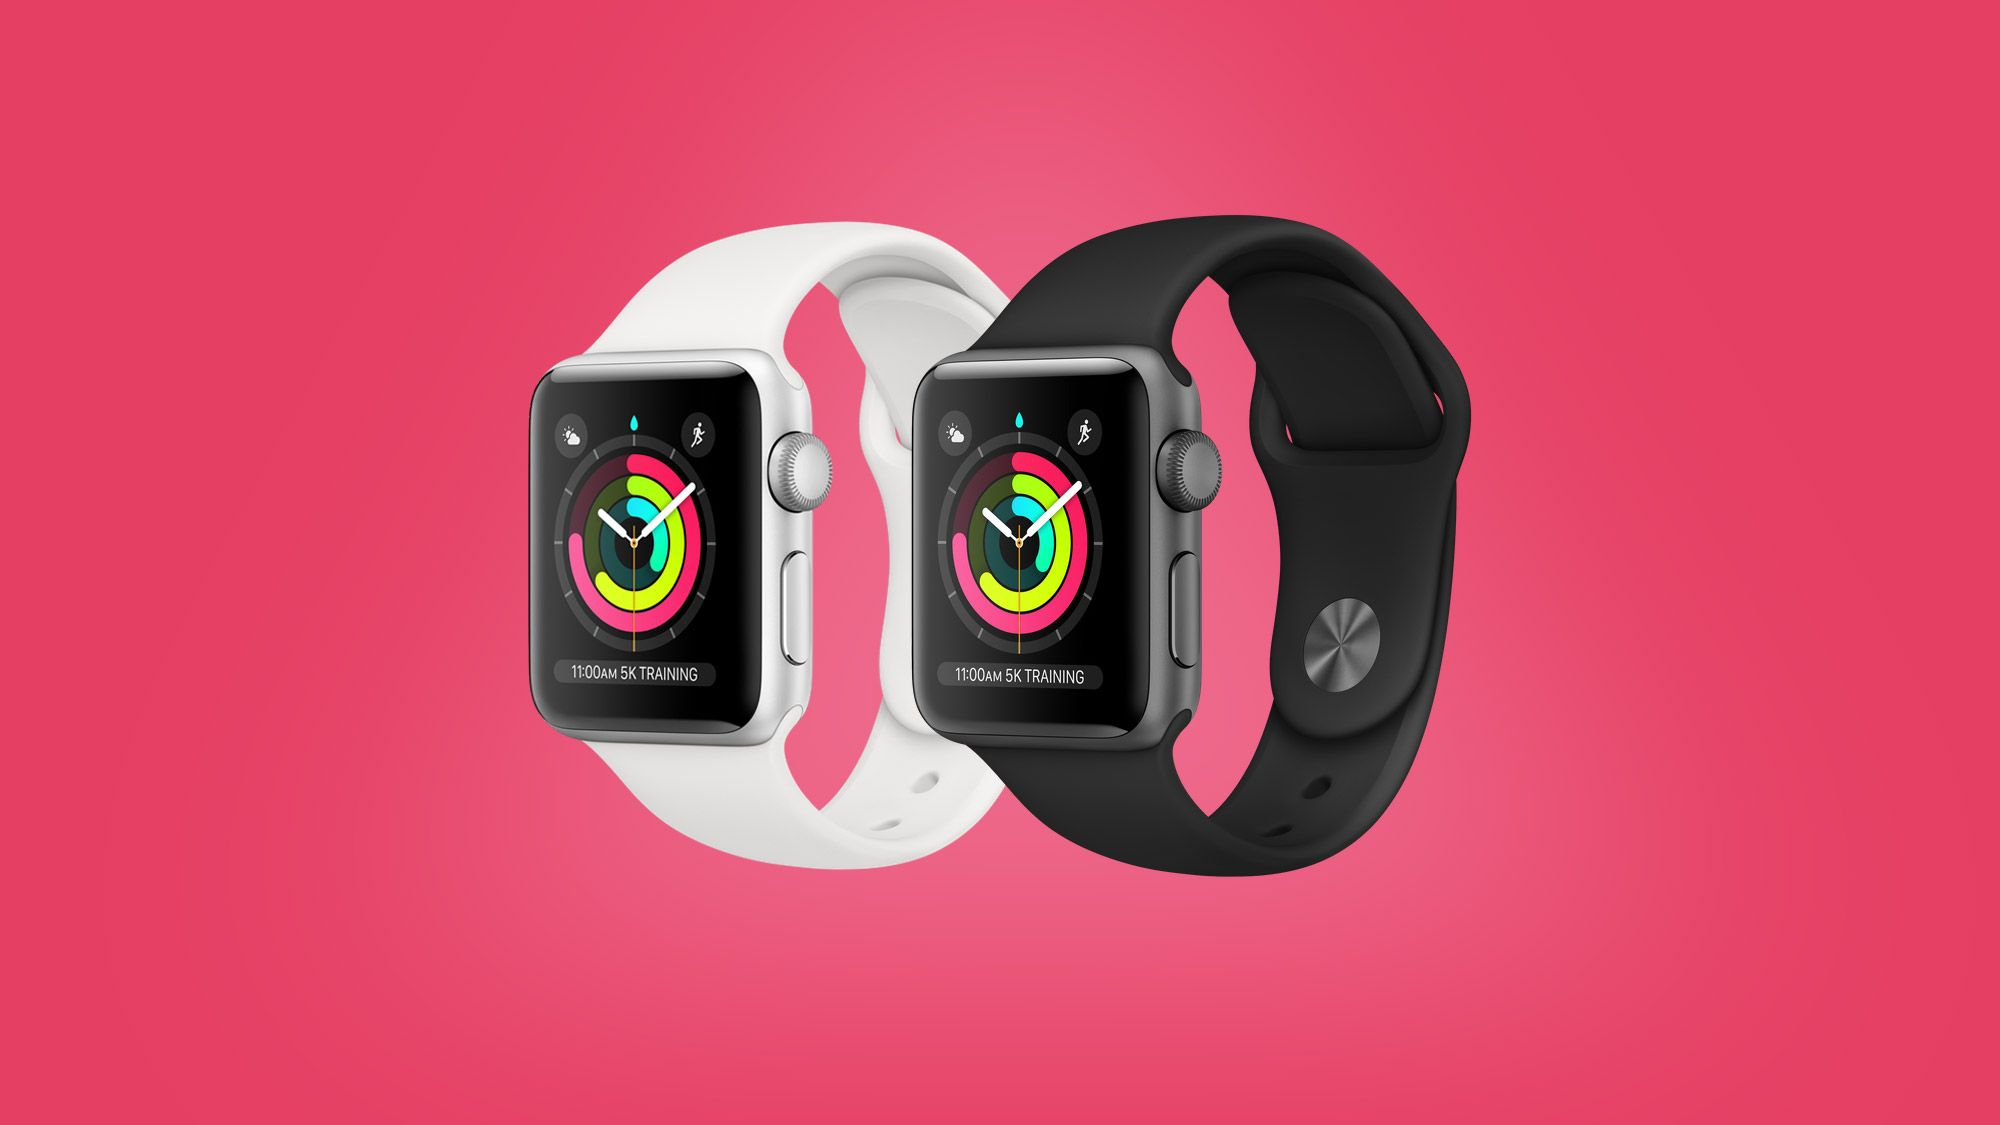 Cyber Monday Apple Watch deals we're expecting in 2020